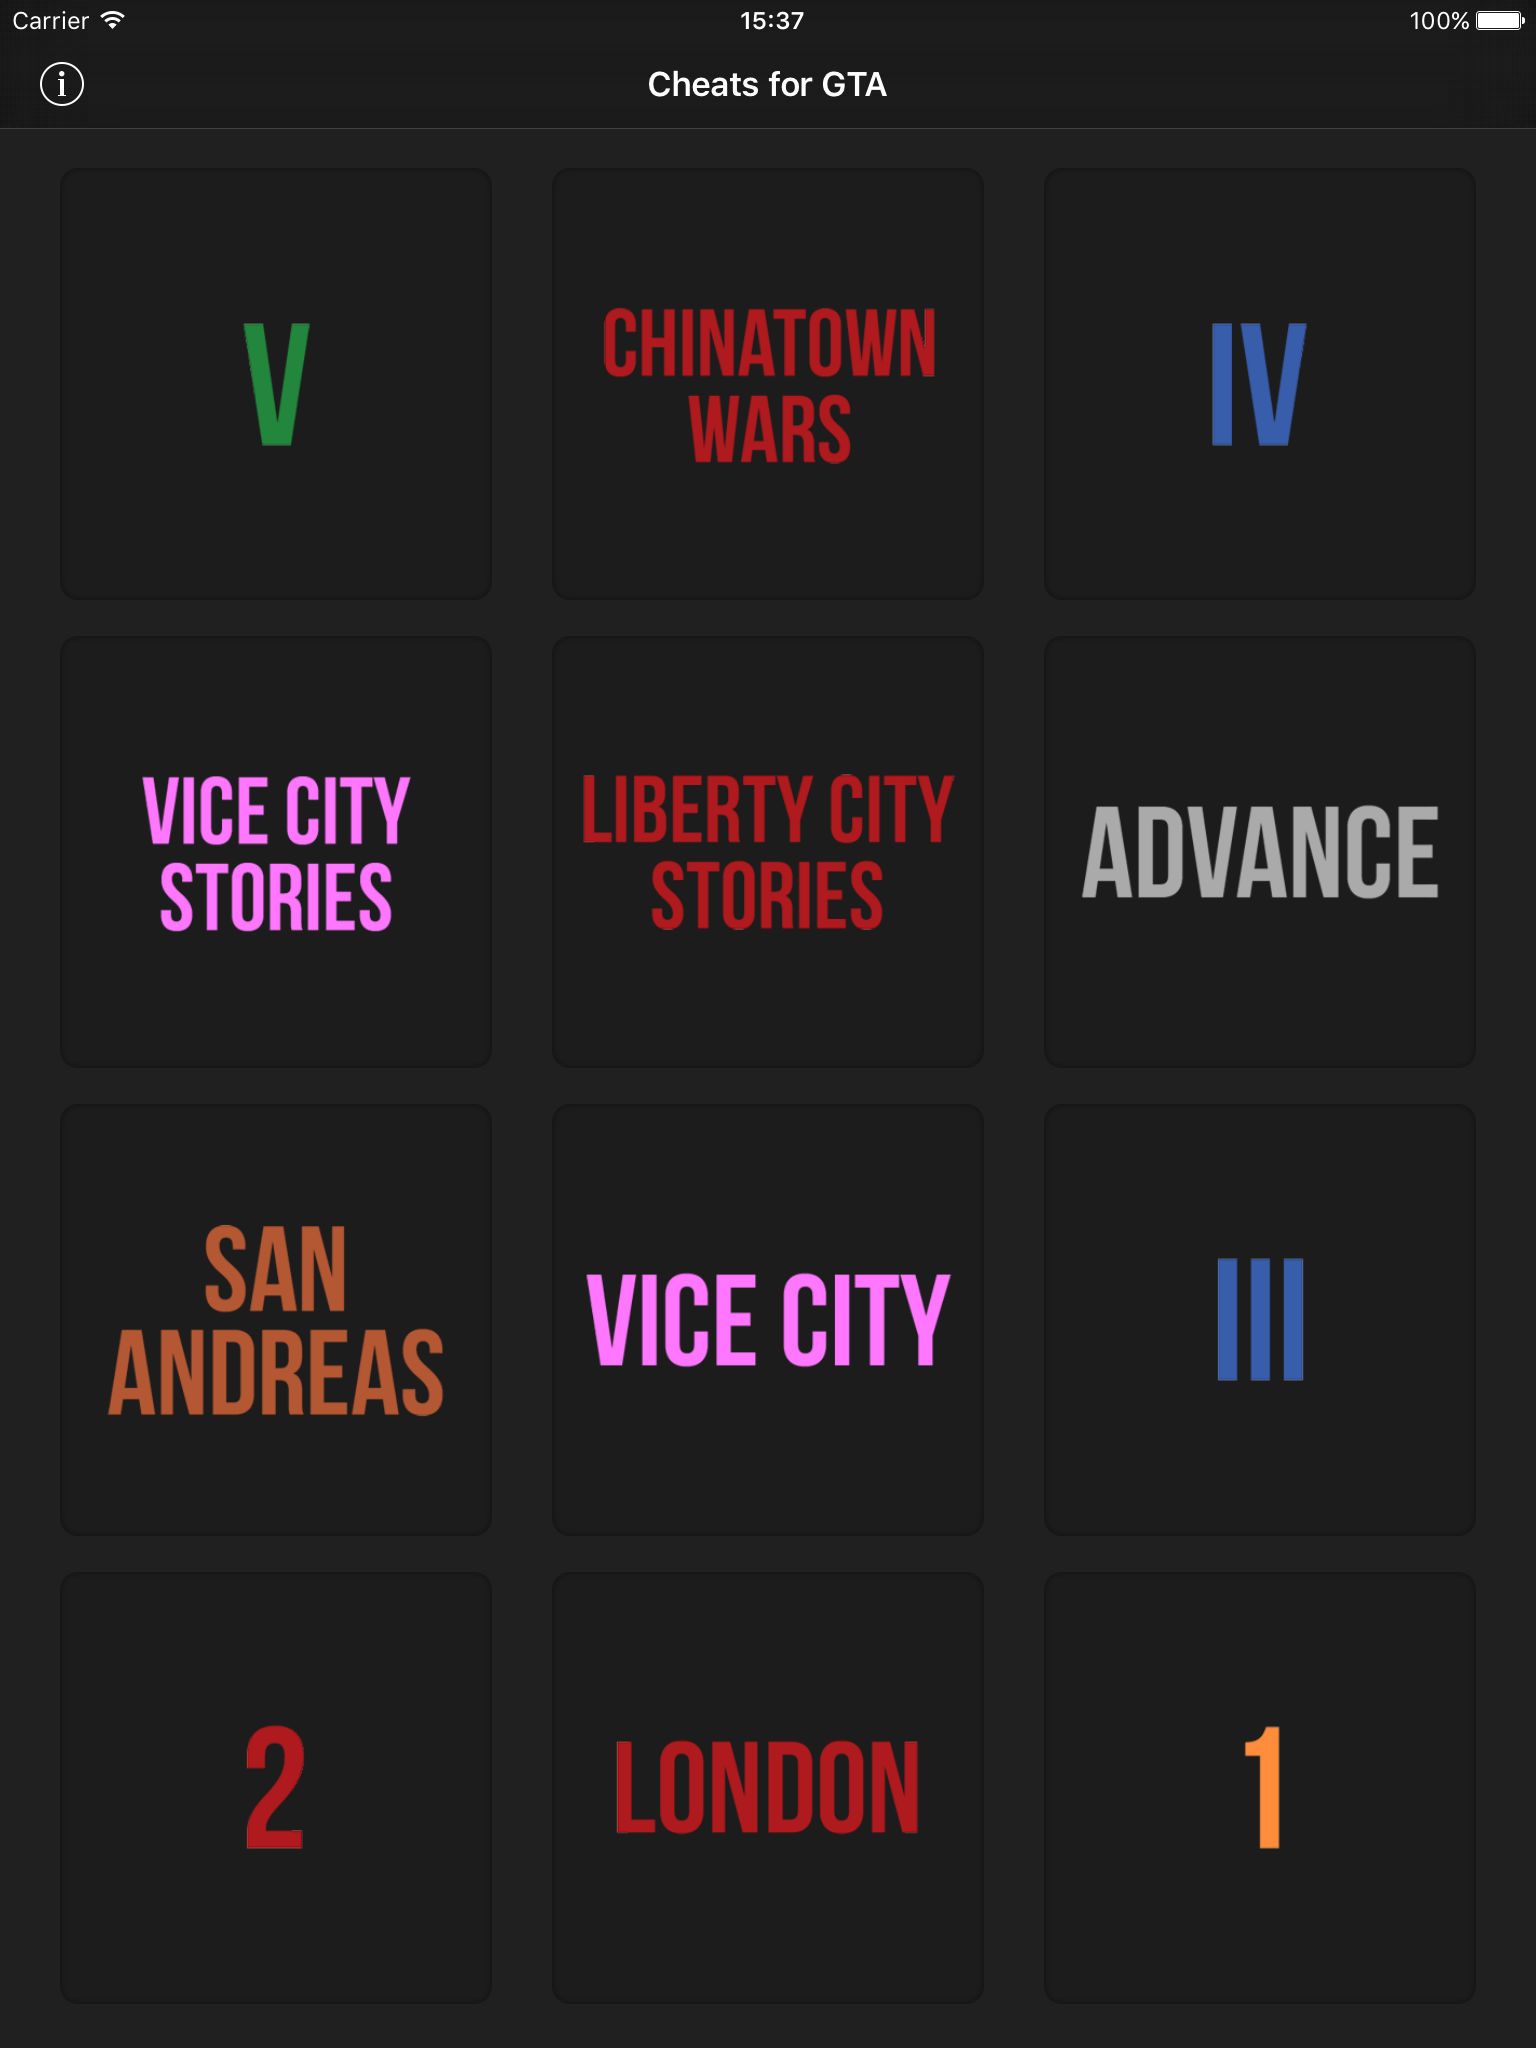 Cheats for GTA - for all Grand Theft Auto games App Ranking